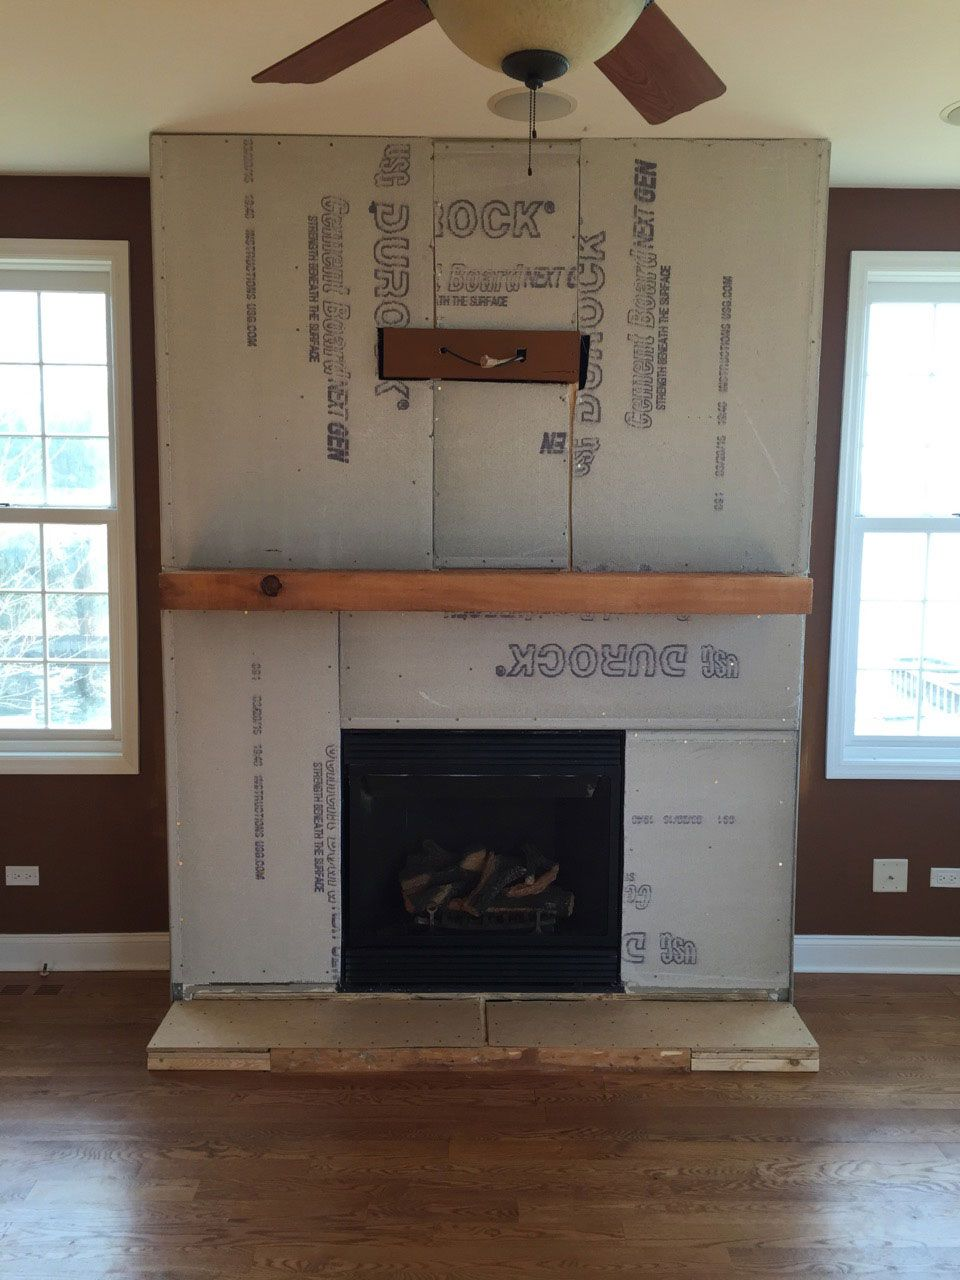 A step-by-step DIY stone veneer installation on a fireplace. In only